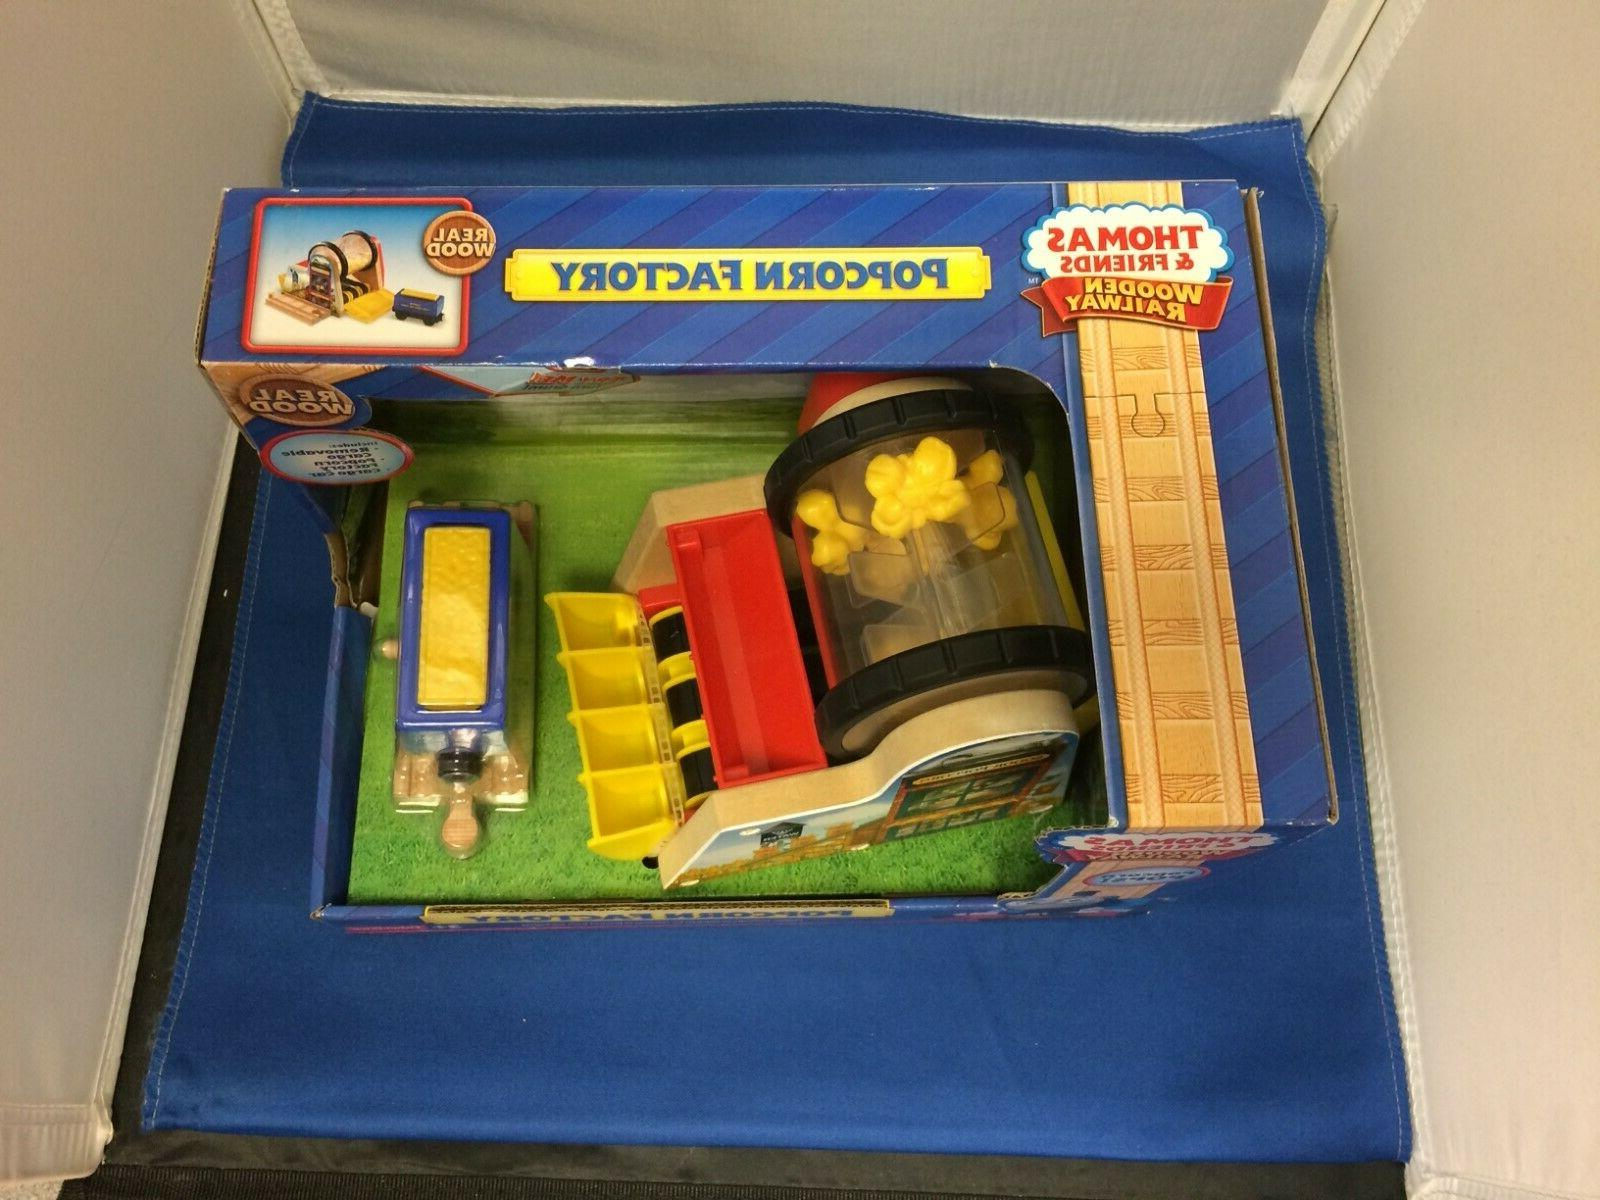 Popcorn Factory for the Thomas System New in